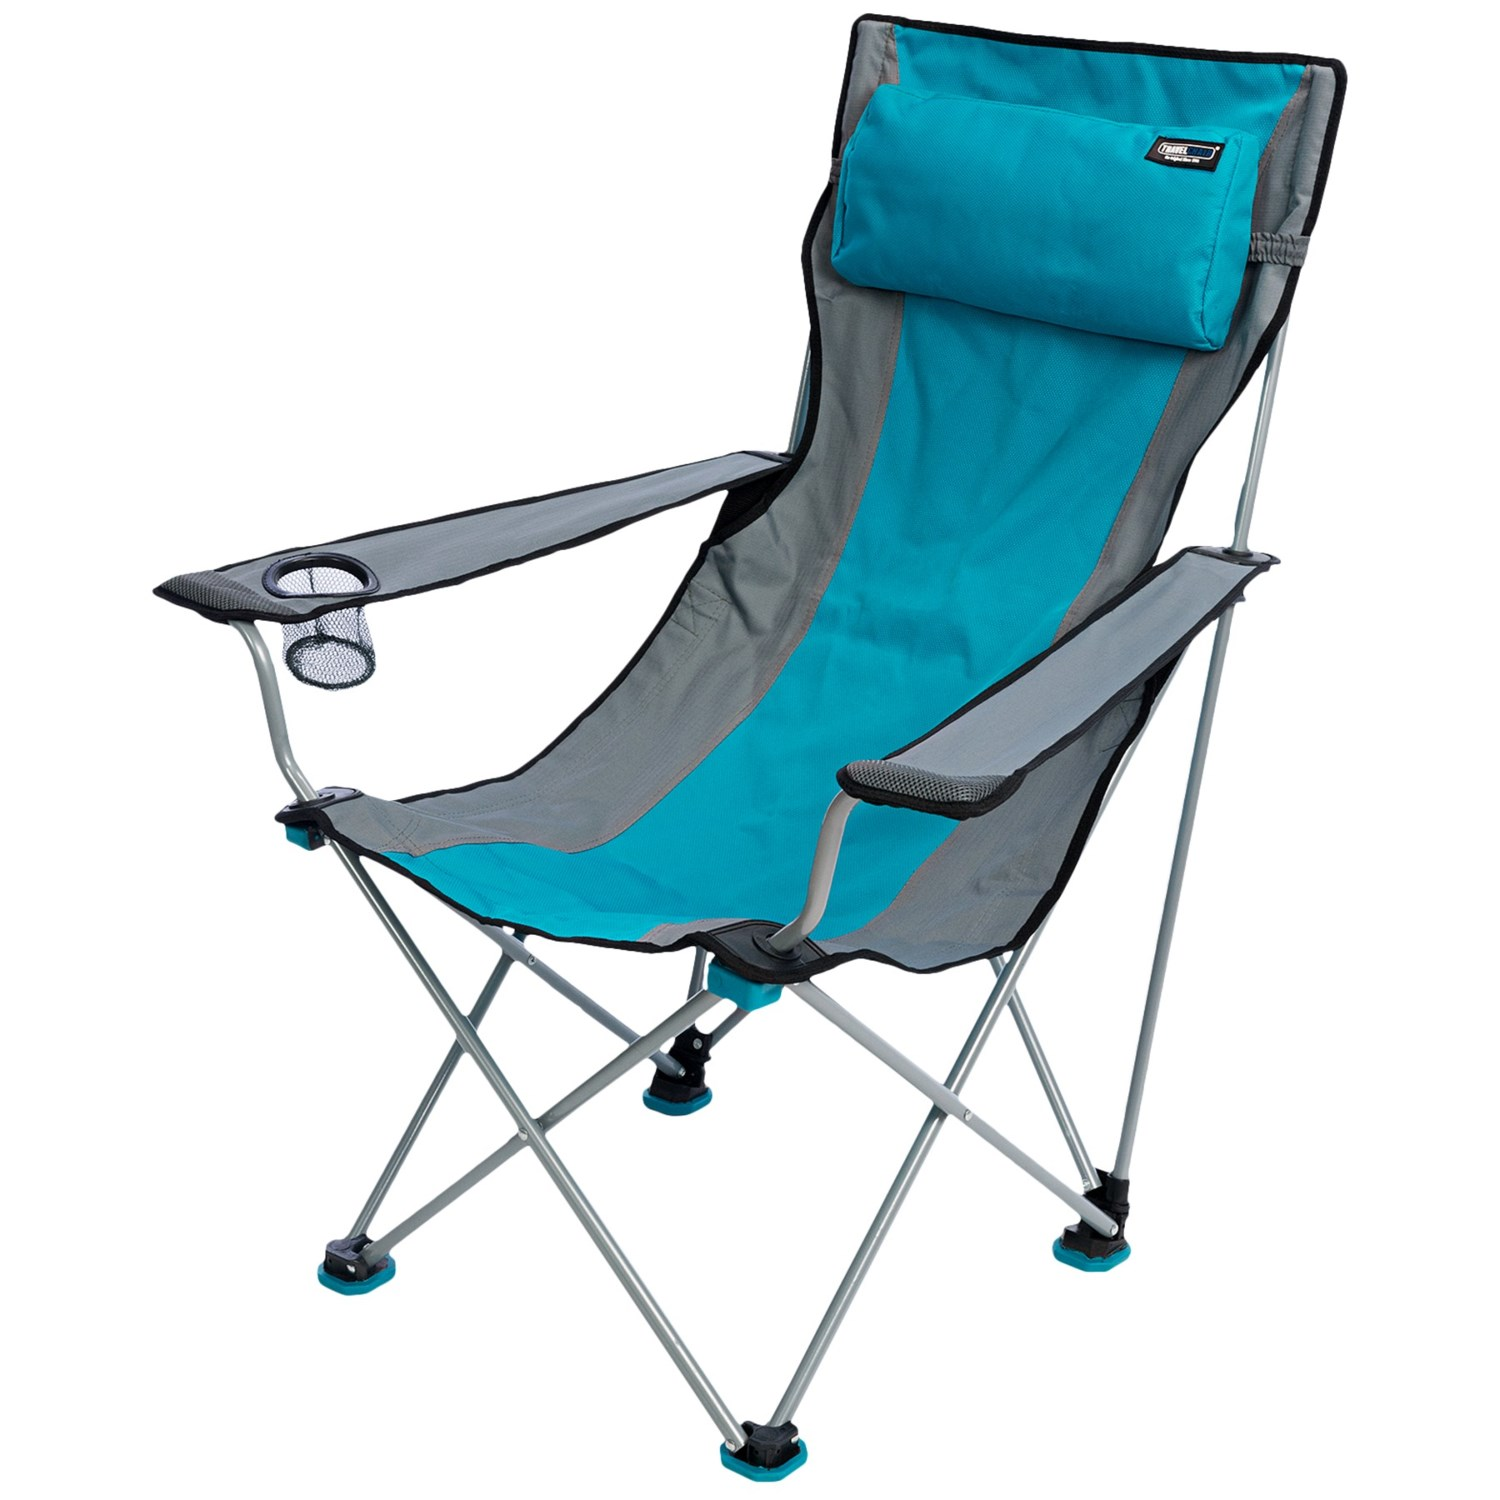 &TravelChair Big Bubba Folding Chair best Camping & Hiking Buy